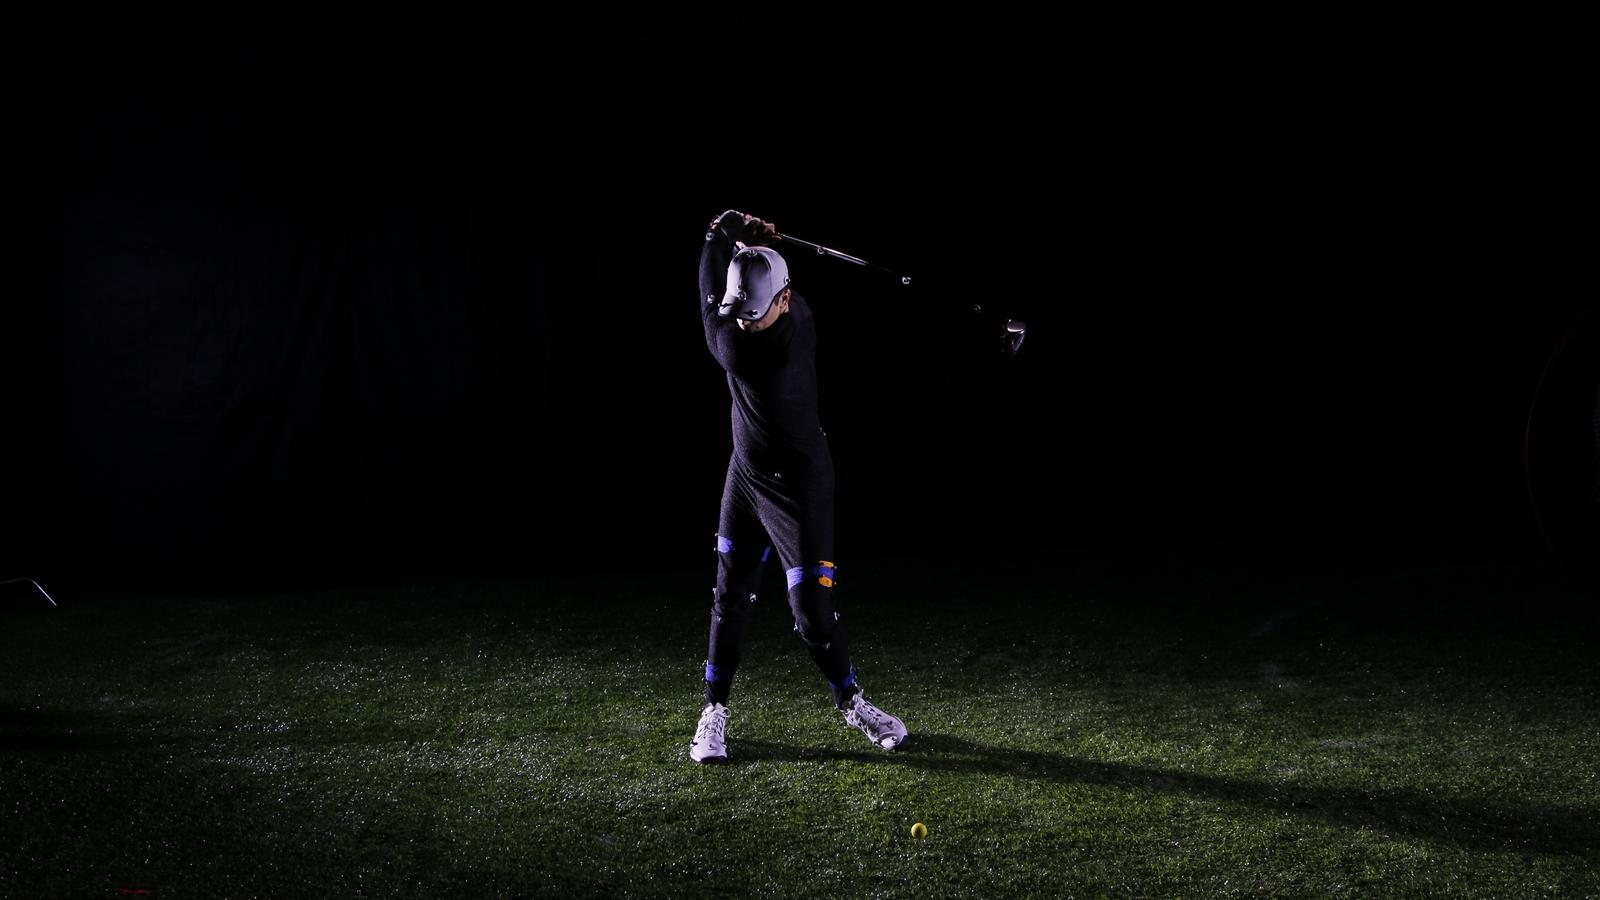 nsrl-motion-capture-golf-wide